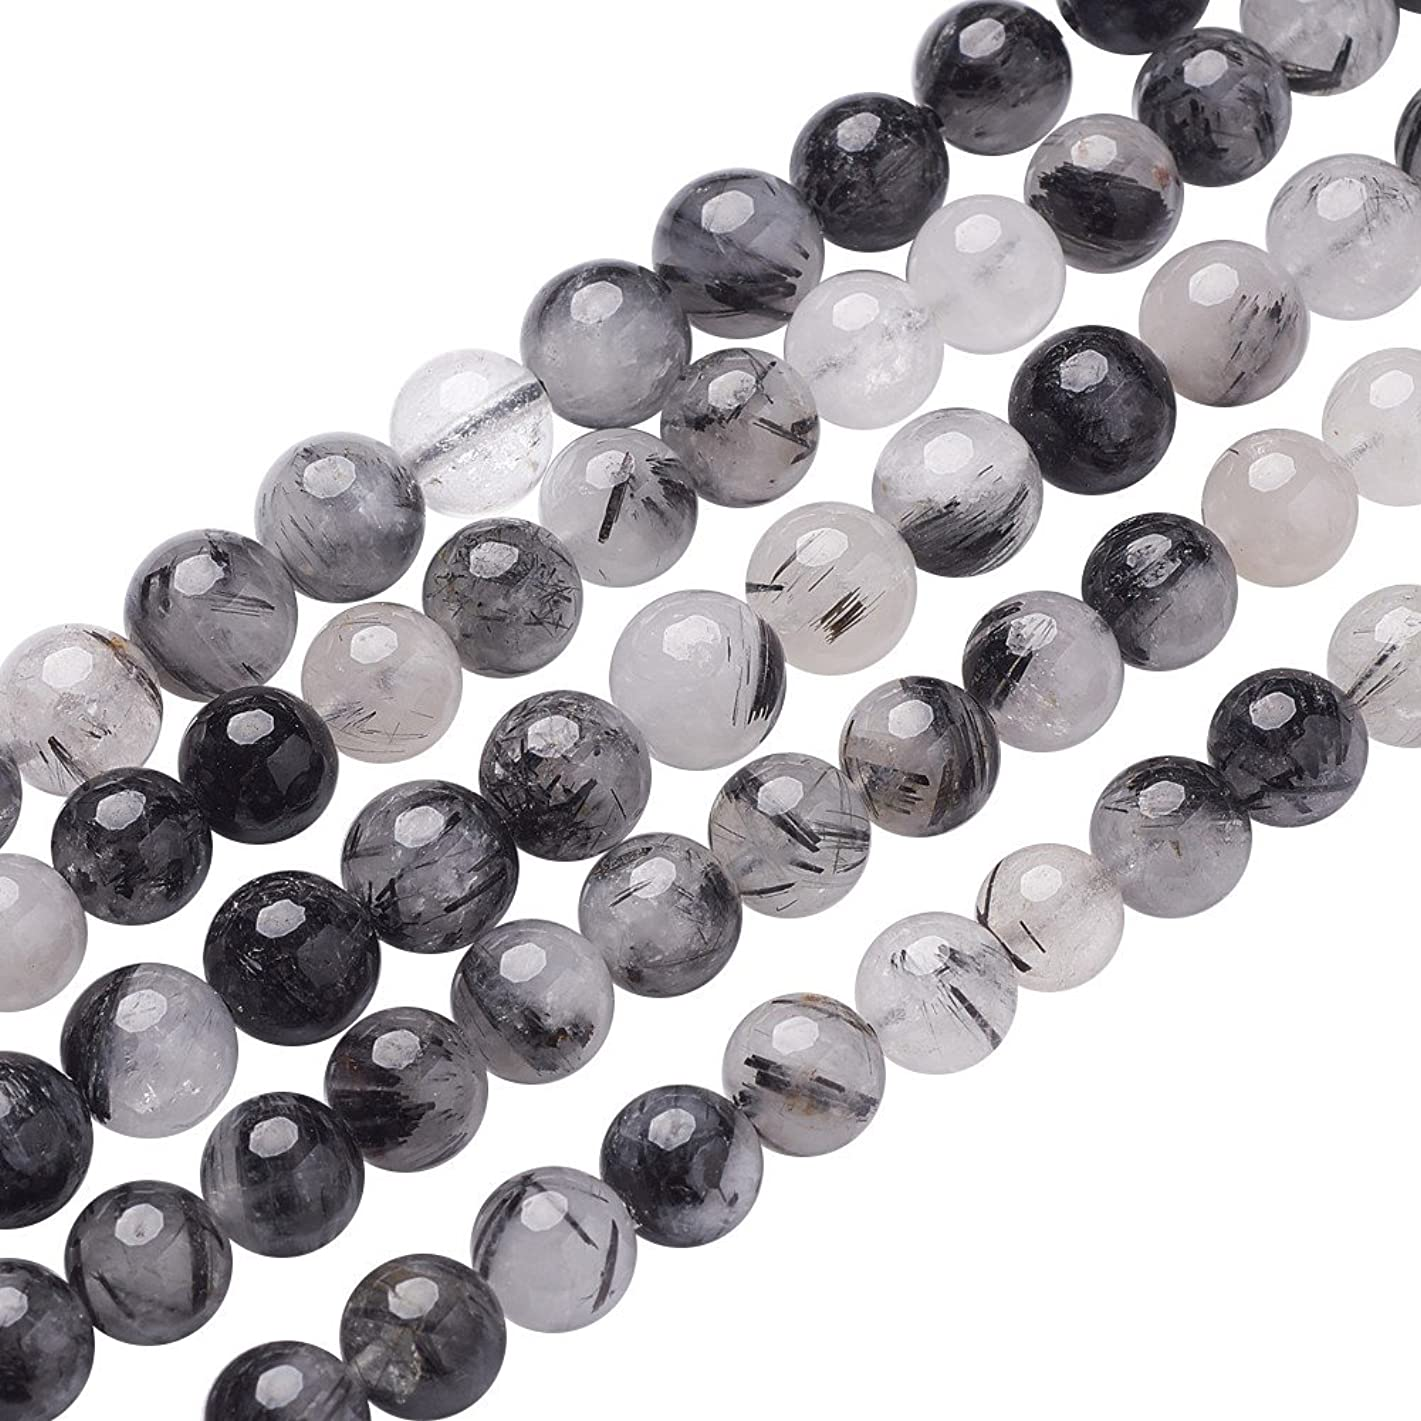 NBEADS 5 Strands 8mm Black/LightGrey Natural Black Rutilated Quartz Gemstone Beads Round Loose Beads for Bracelet Necklace Jewelry Making, 1 Strand 24pcs